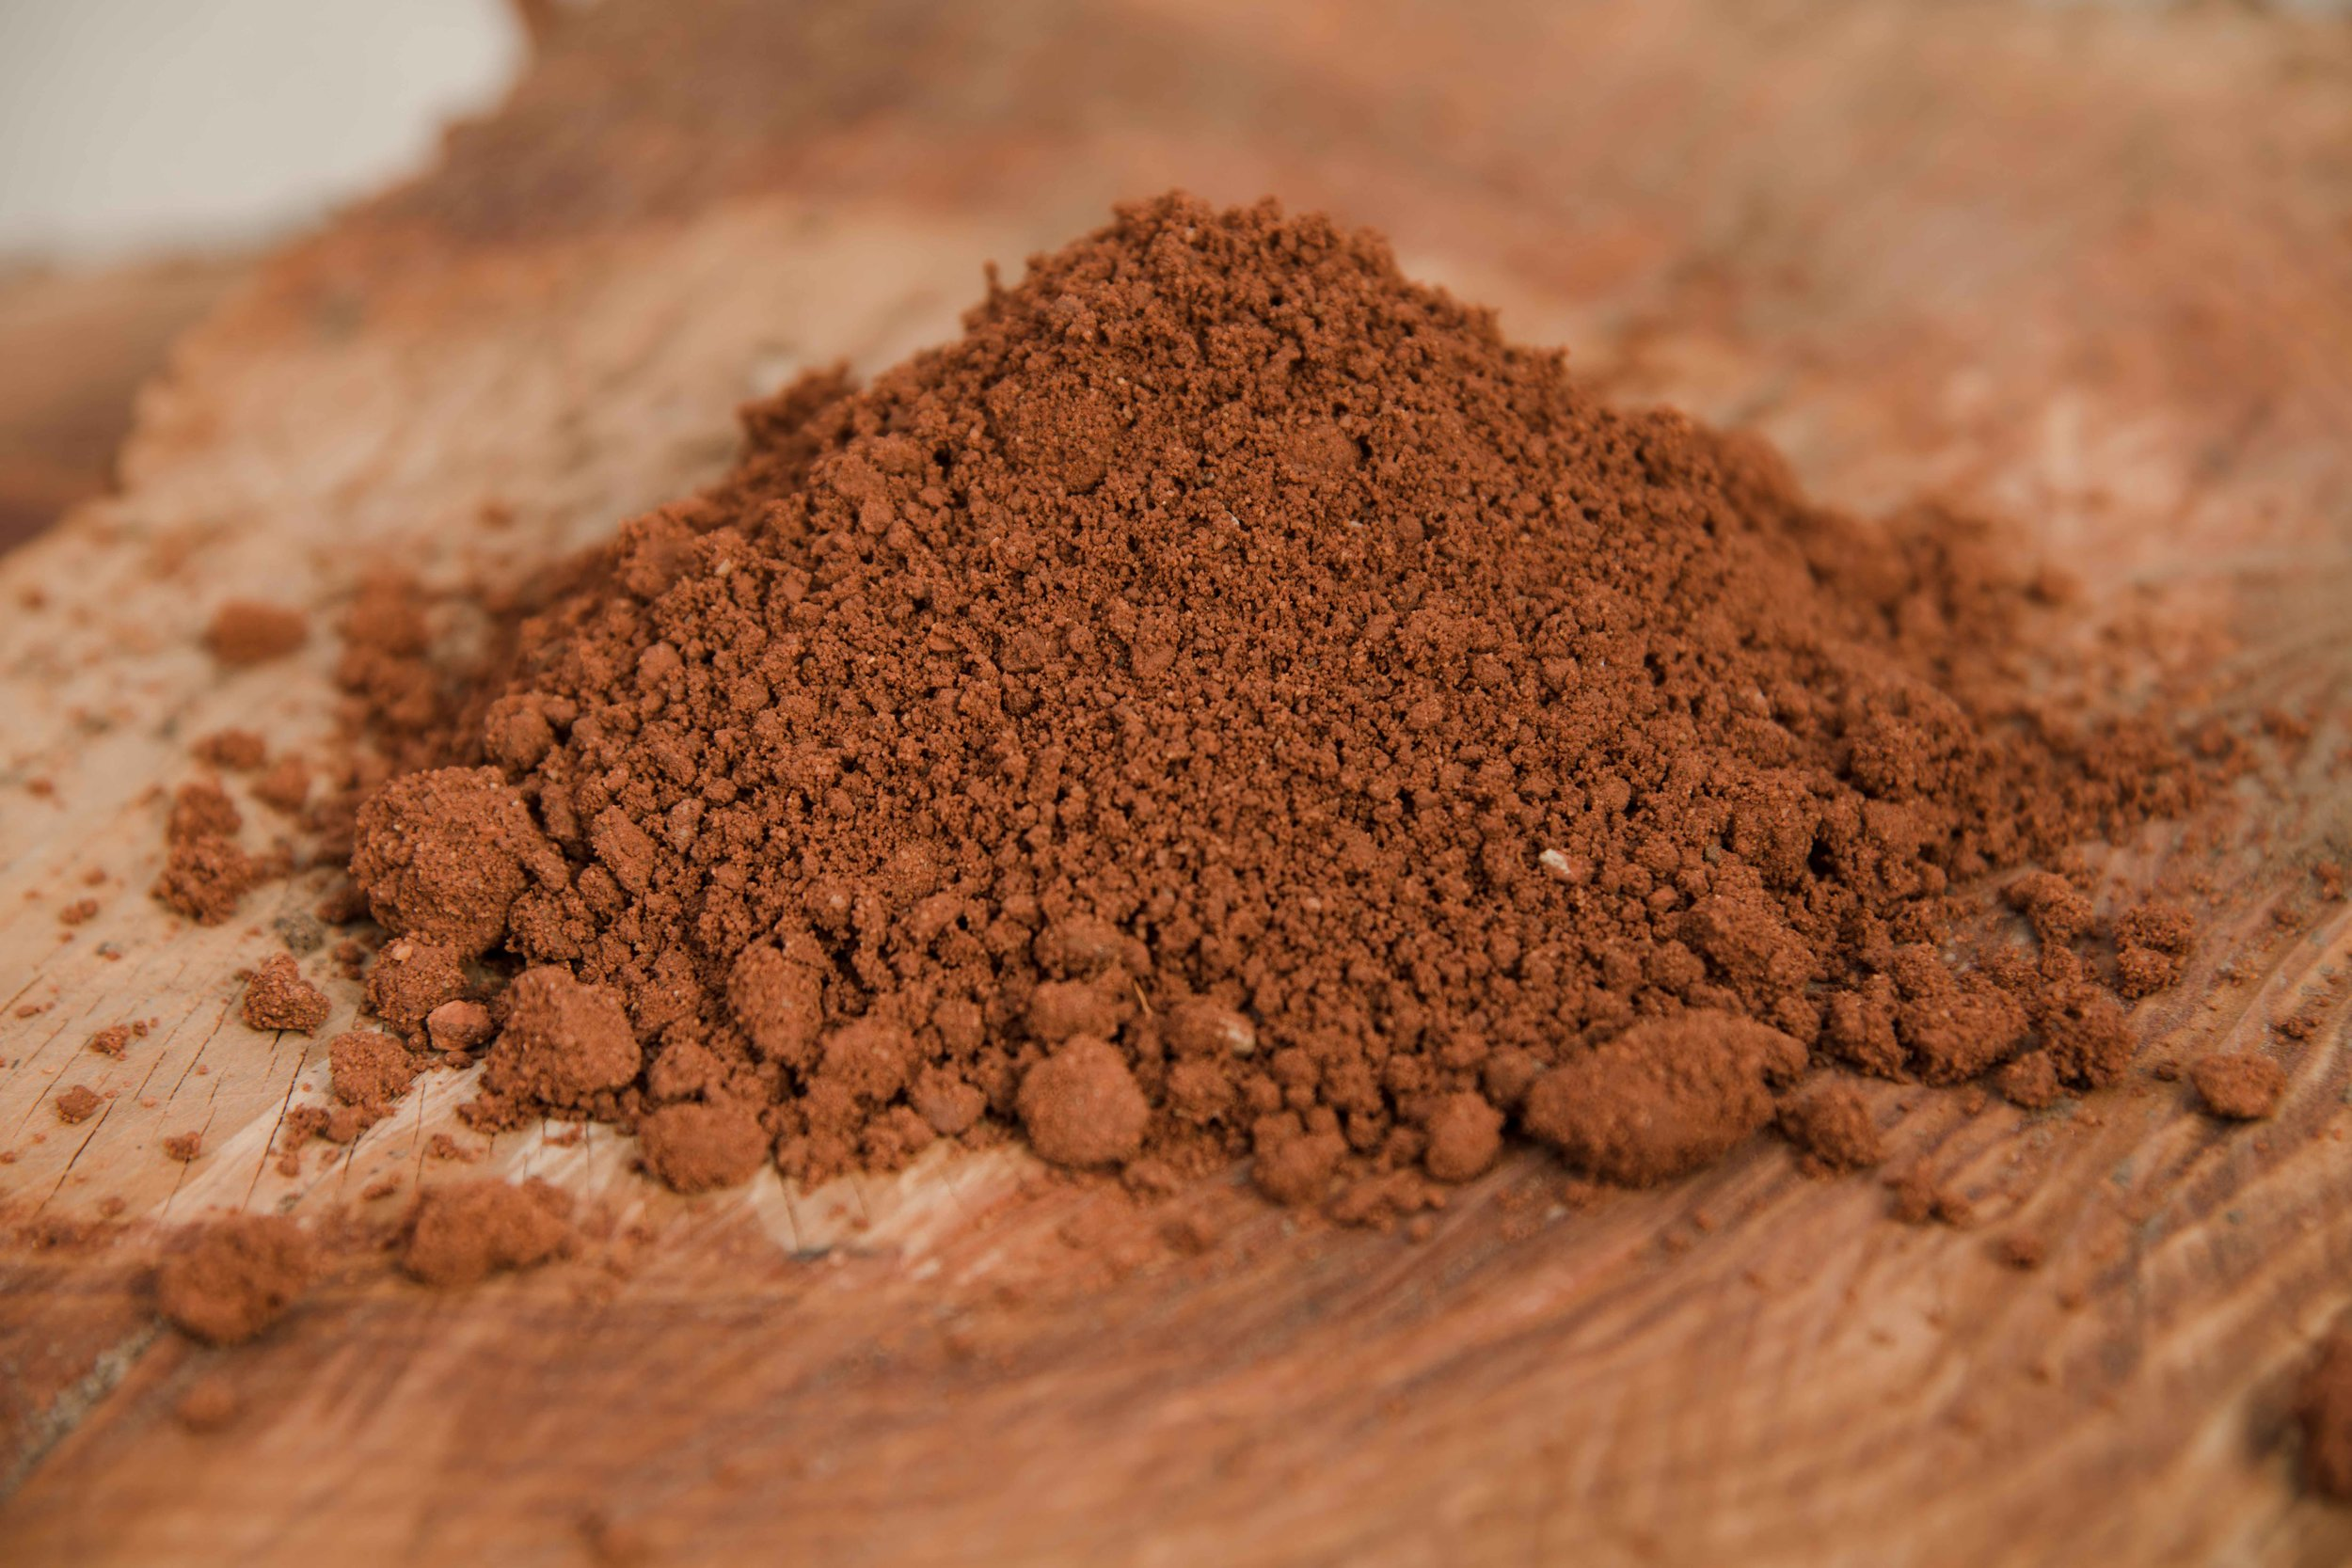 Clay - Our organic red clay is a well-recognized starting point for many building projects including: foundations, pond liners, tennis court & ball field mixes.